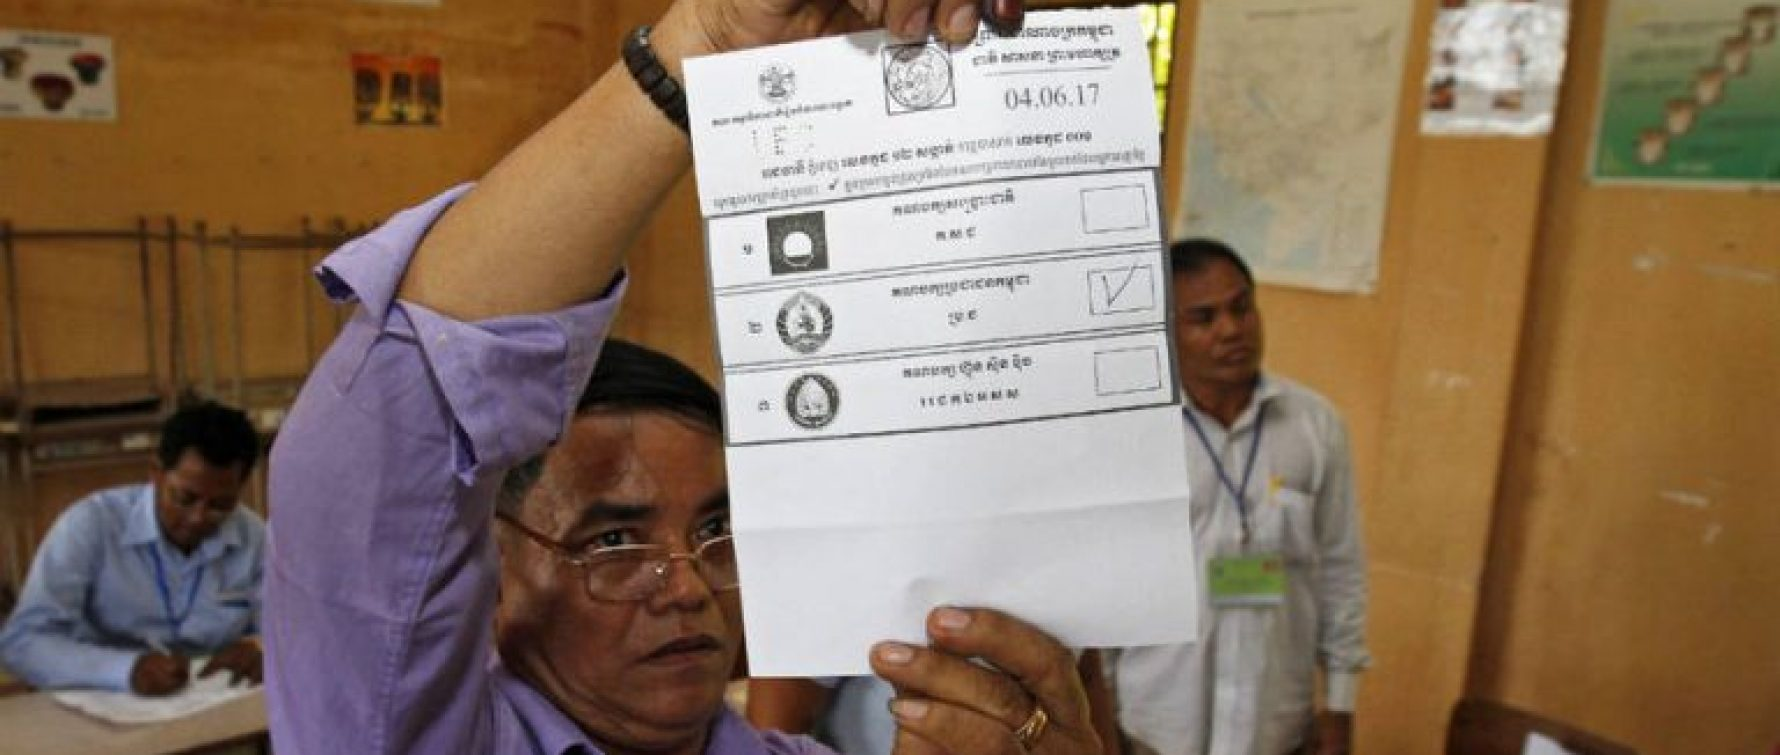 Statement of the IDC-CDI on the Commune Council election in Cambodia